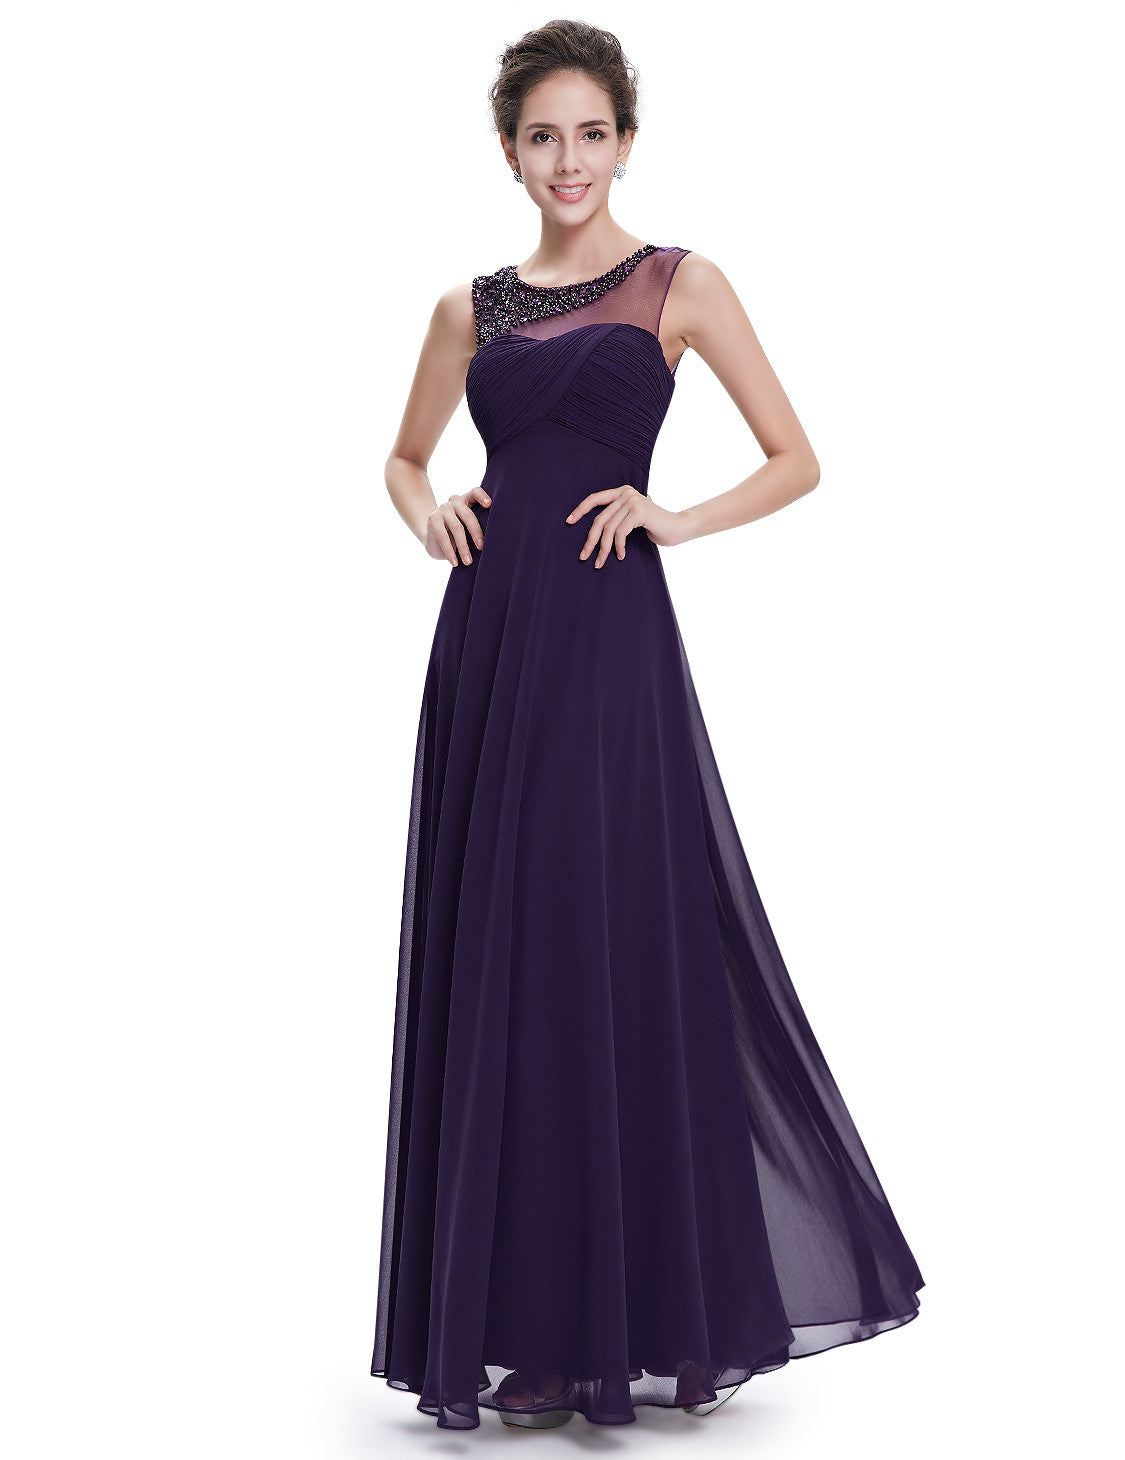 Elegant Round Neck Long Party Purple Evening Dress